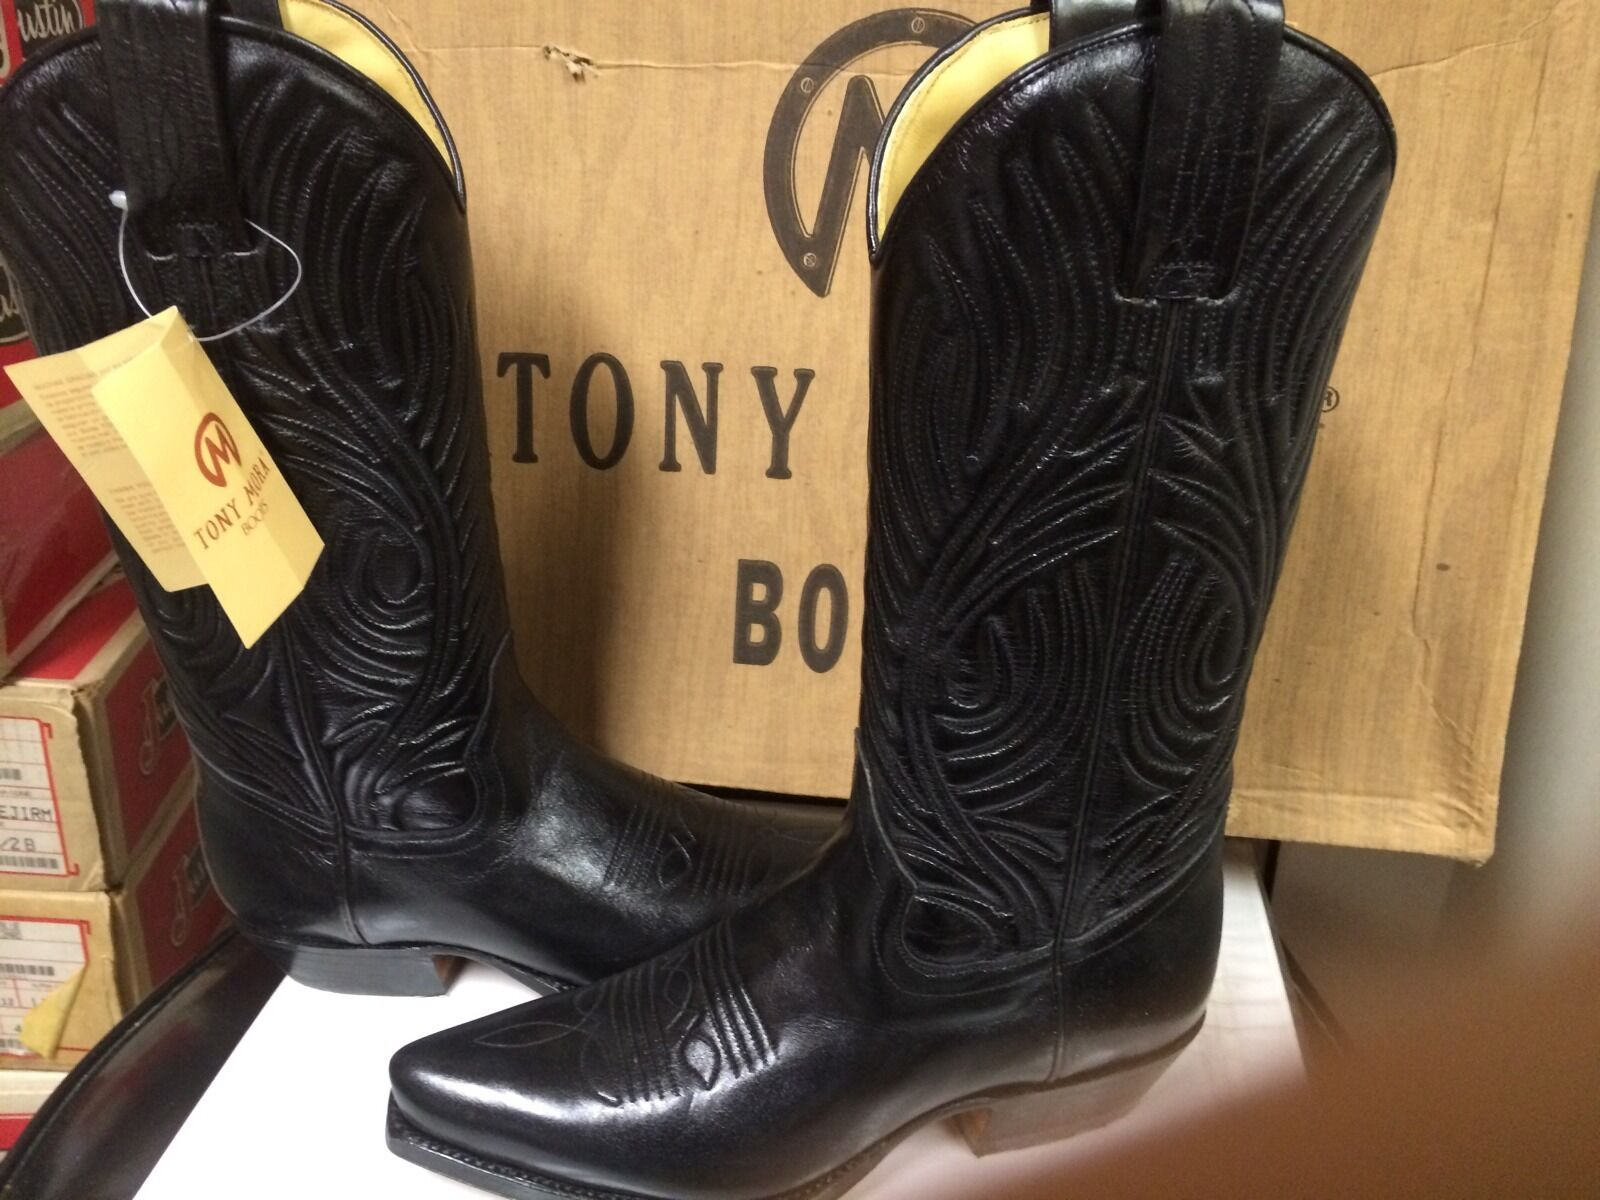 Tony Mora Womens Black Leather Western Boot 3389 3389 3389 Size 4.5 M New 4c9456